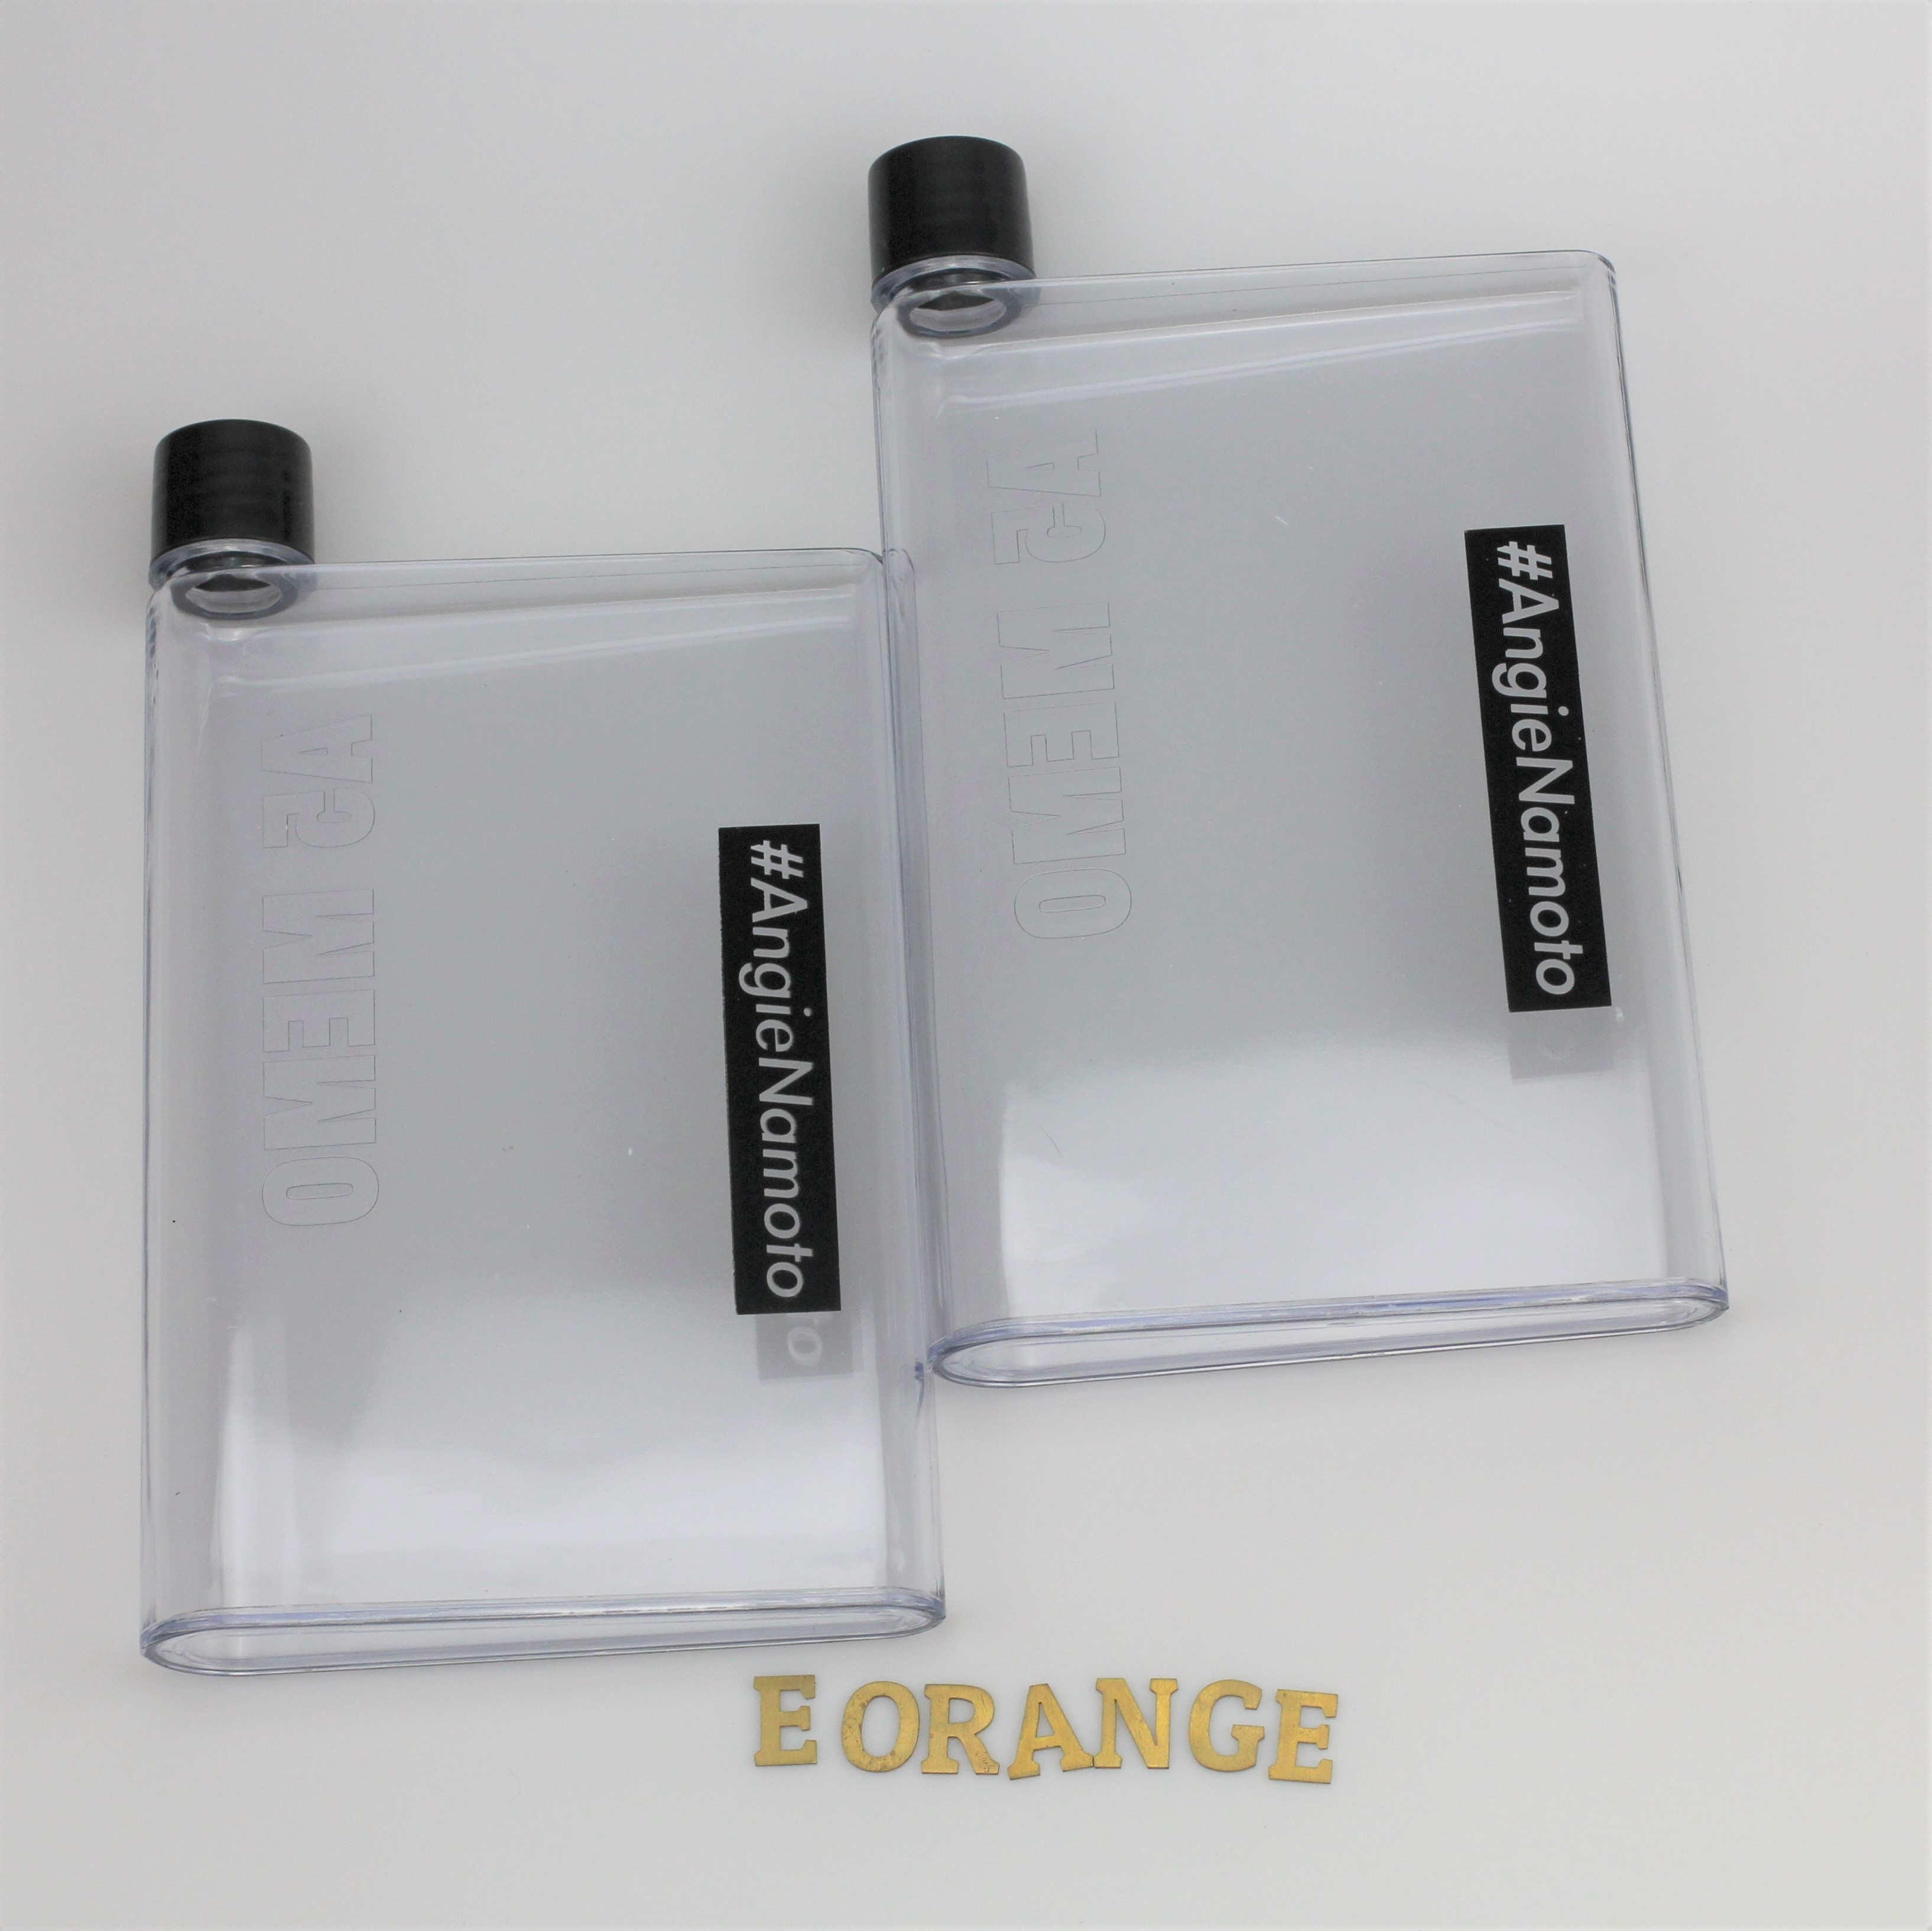 Memo Notebook Water Bottle for event summer giveaway customised logo print singapore